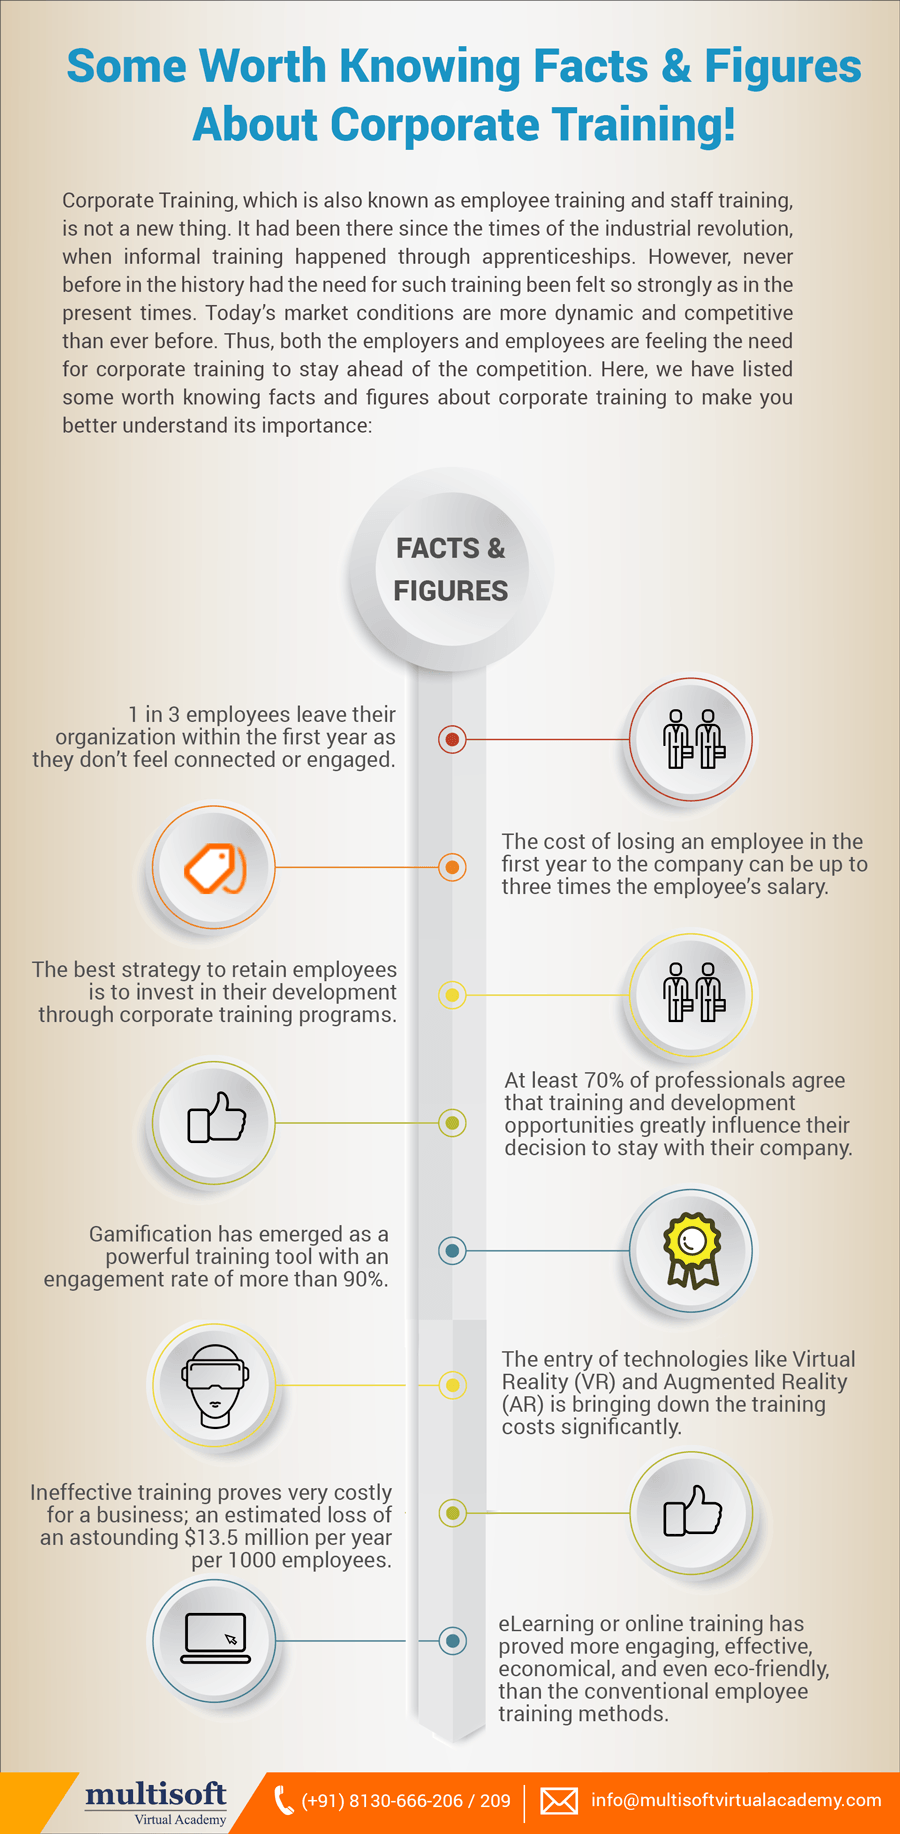 Some Worth Knowing Facts & Figures About Corporate Training!